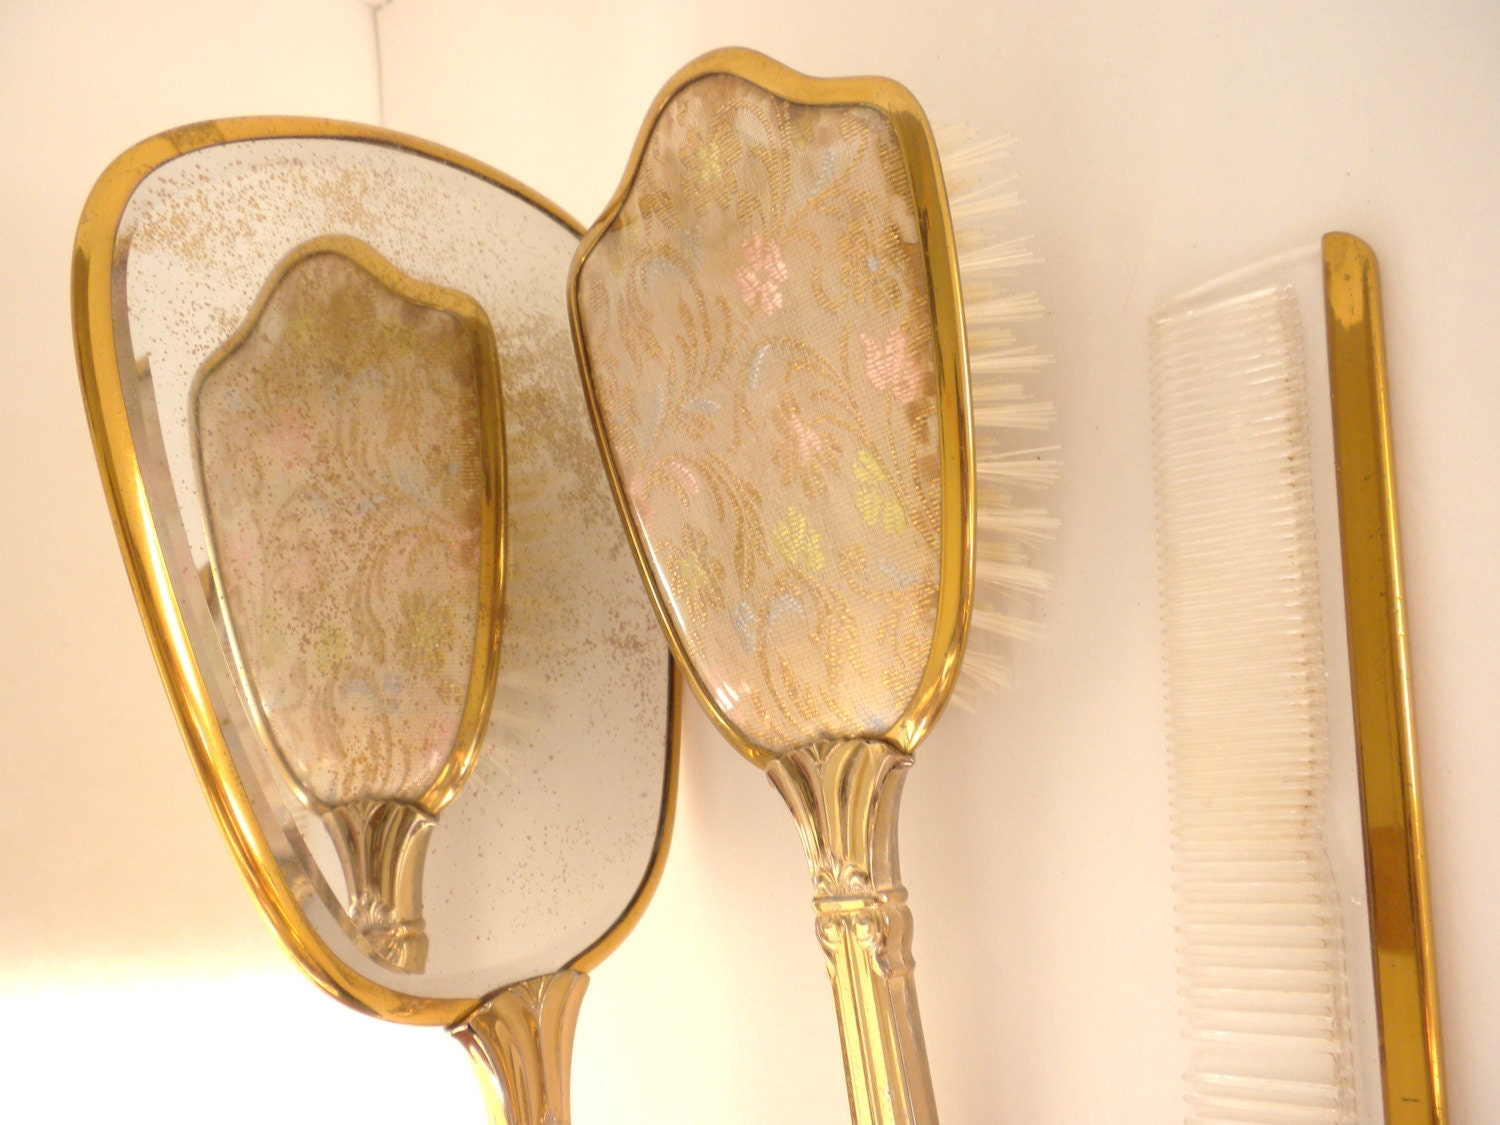 Vintage Hand Held Mirror Brush and Comb in Brass by oldandnew8